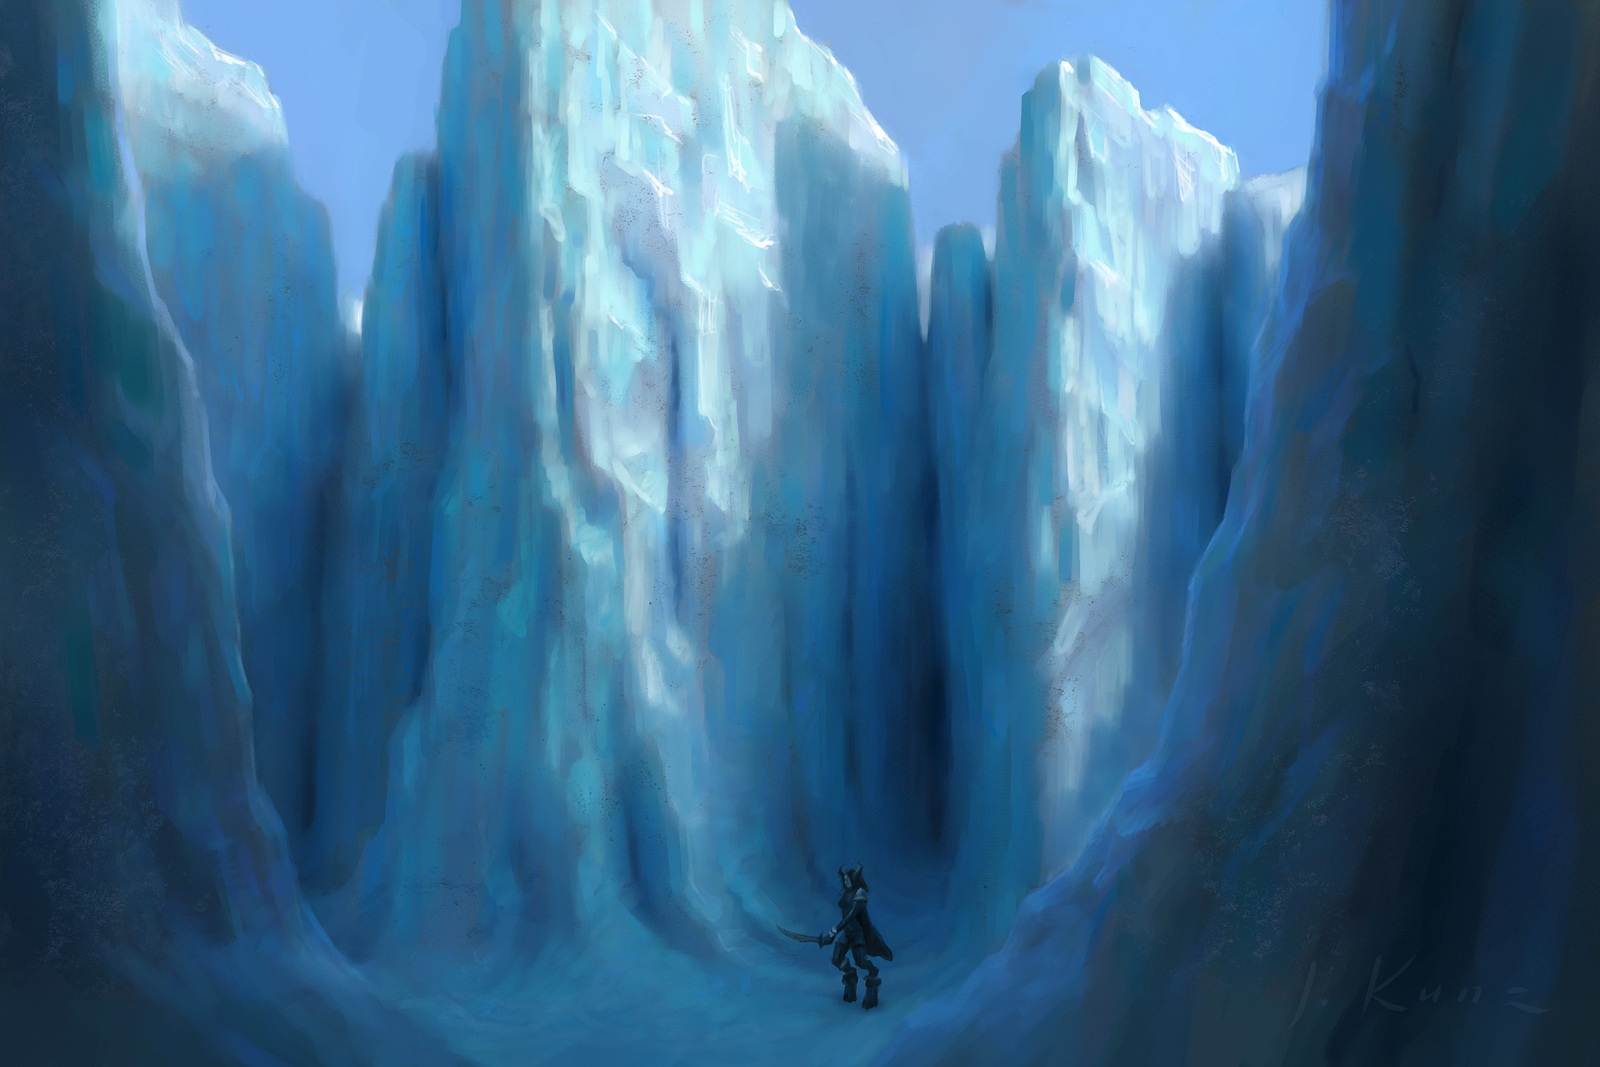 region-icecrown-glacier01-full.jpg